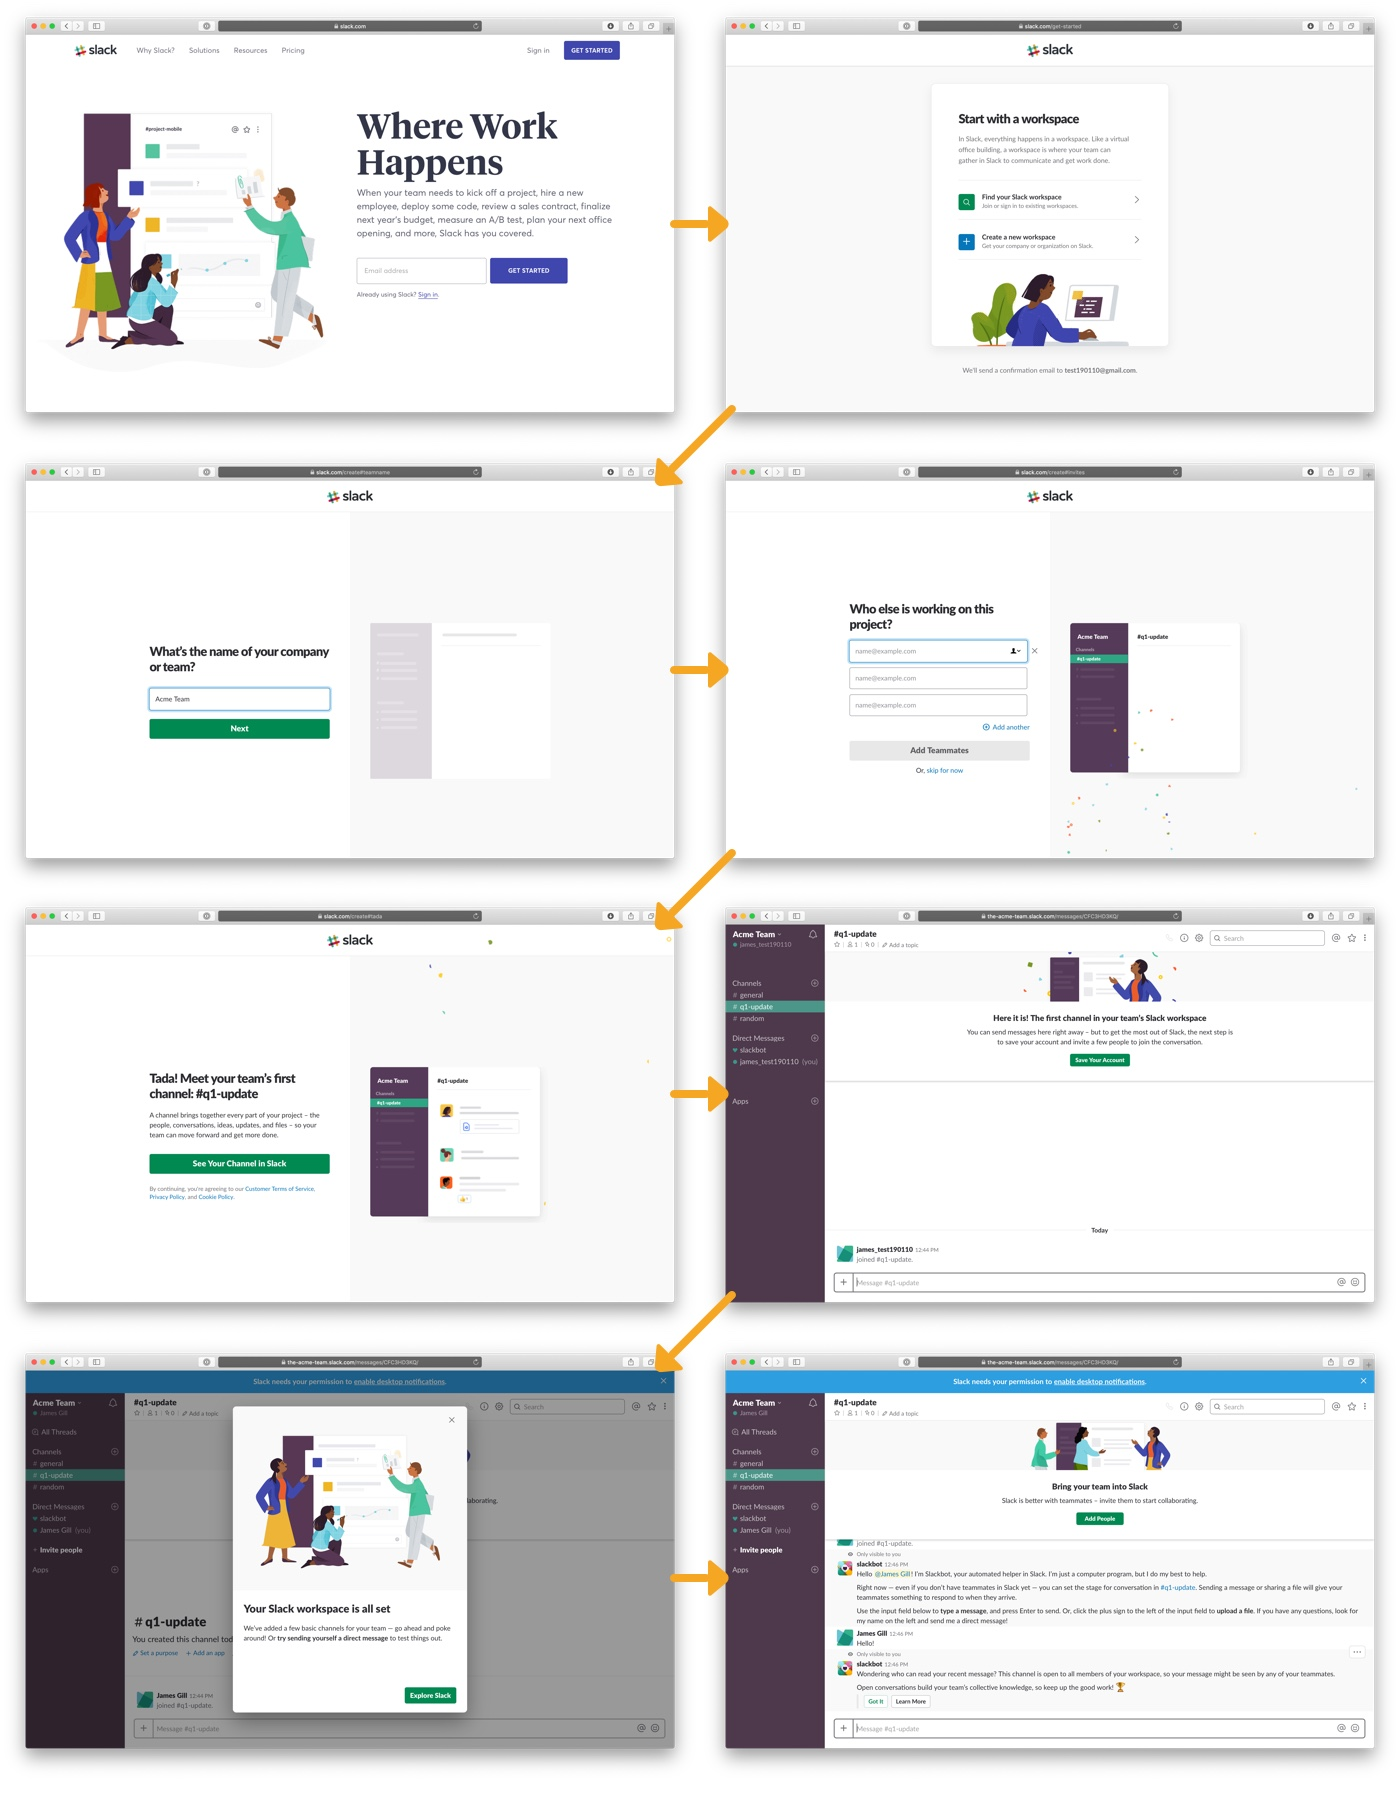 a look at the Slack use onboarding flow